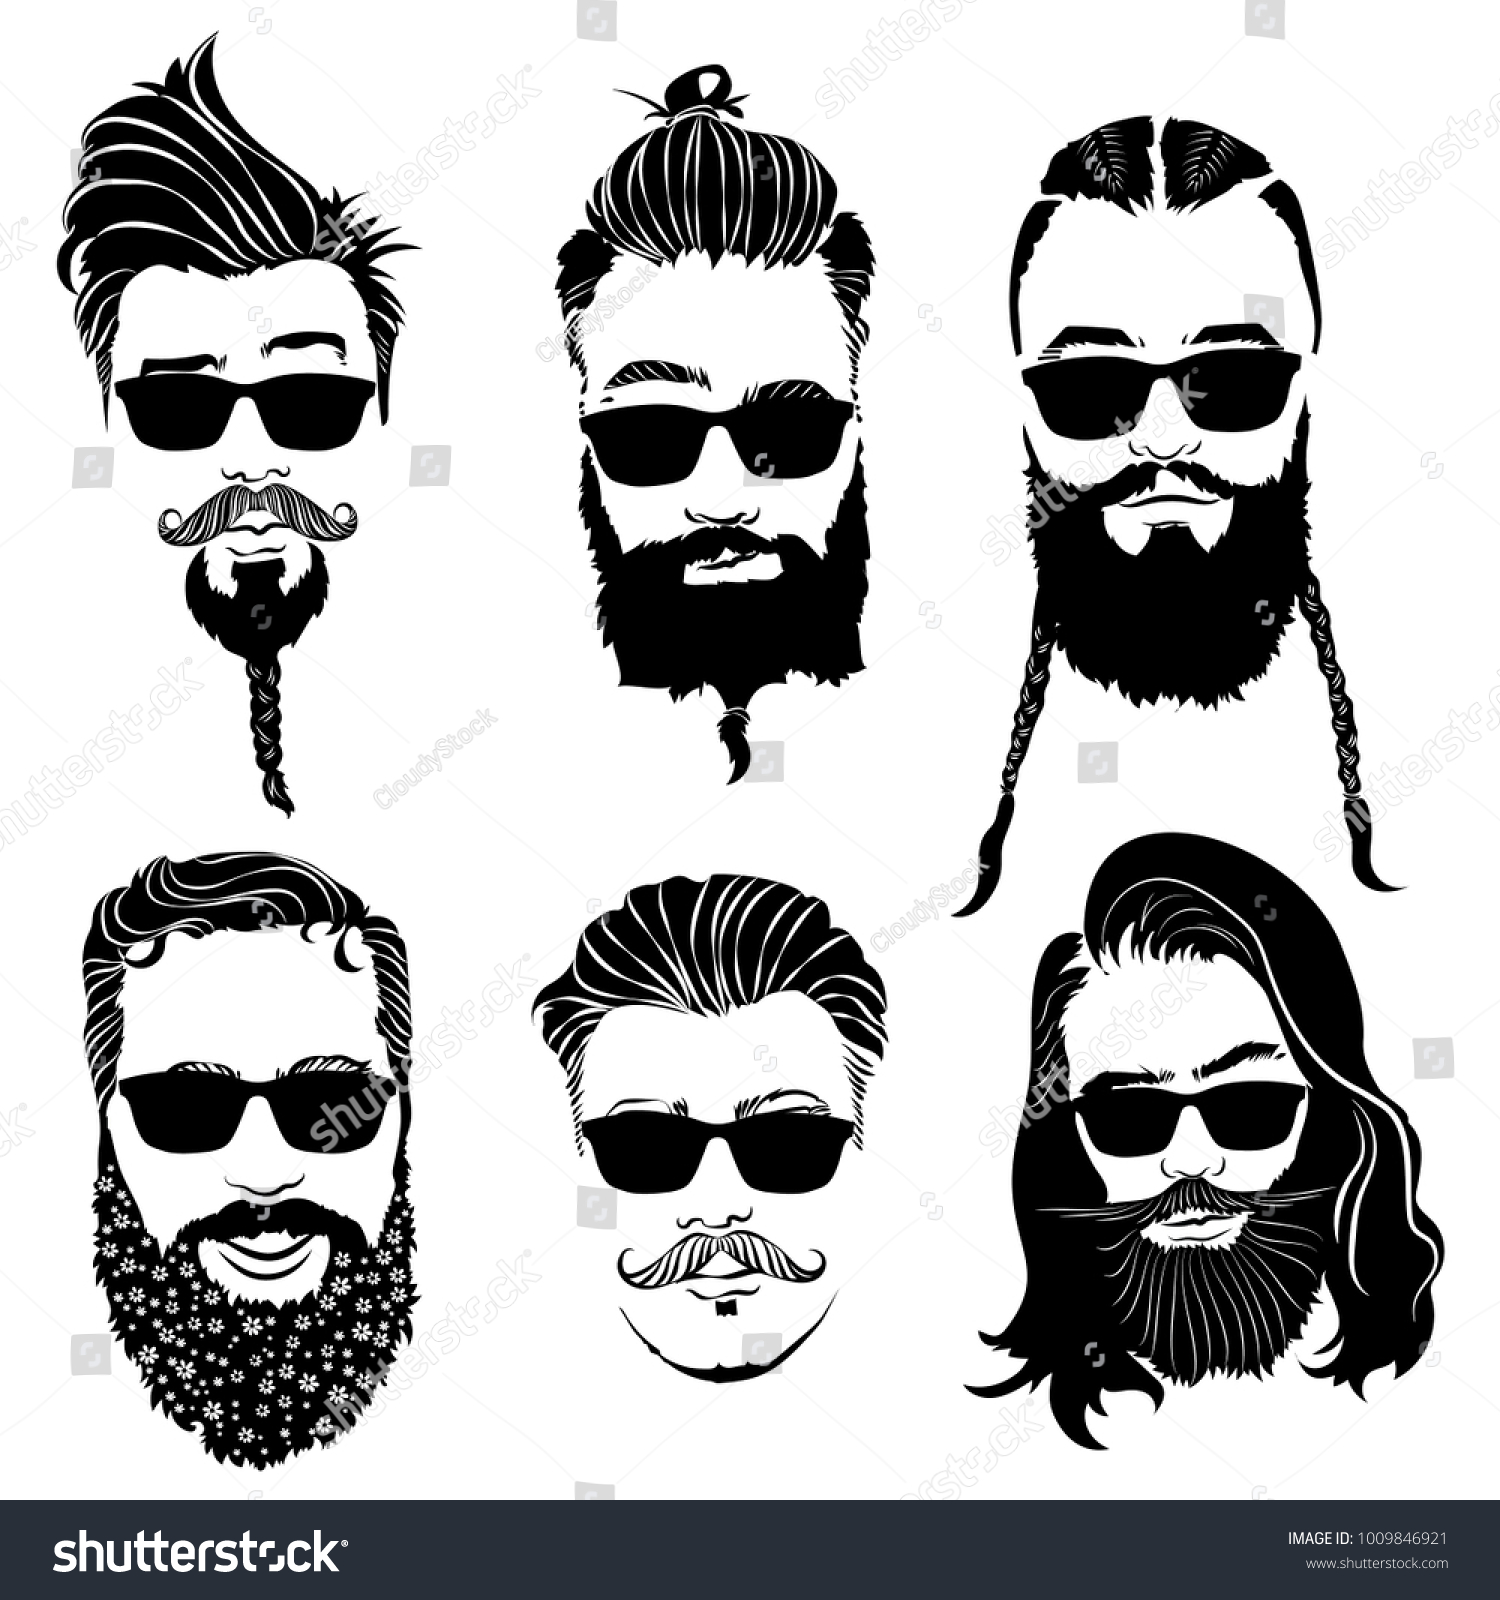 Set Of Hairstyles For Men In Glasses. Collection Of Black Silhouettes Of  Hairstyles And Beards